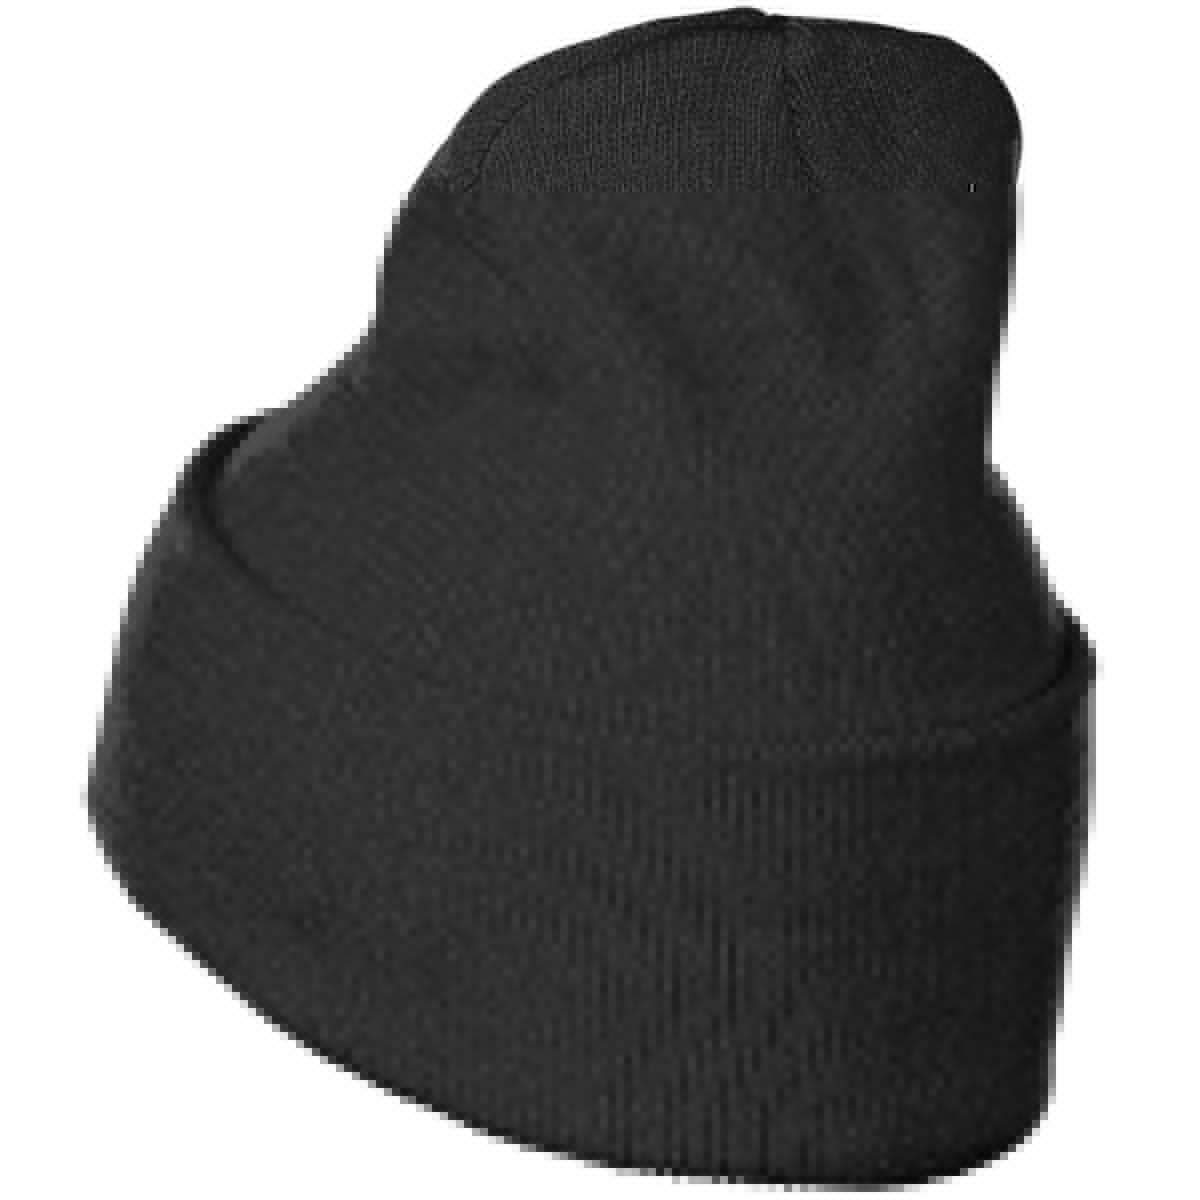 Horizon-t Six Skulls Unisex 100/% Acrylic Knitting Hat Cap Fashion Beanie Hat